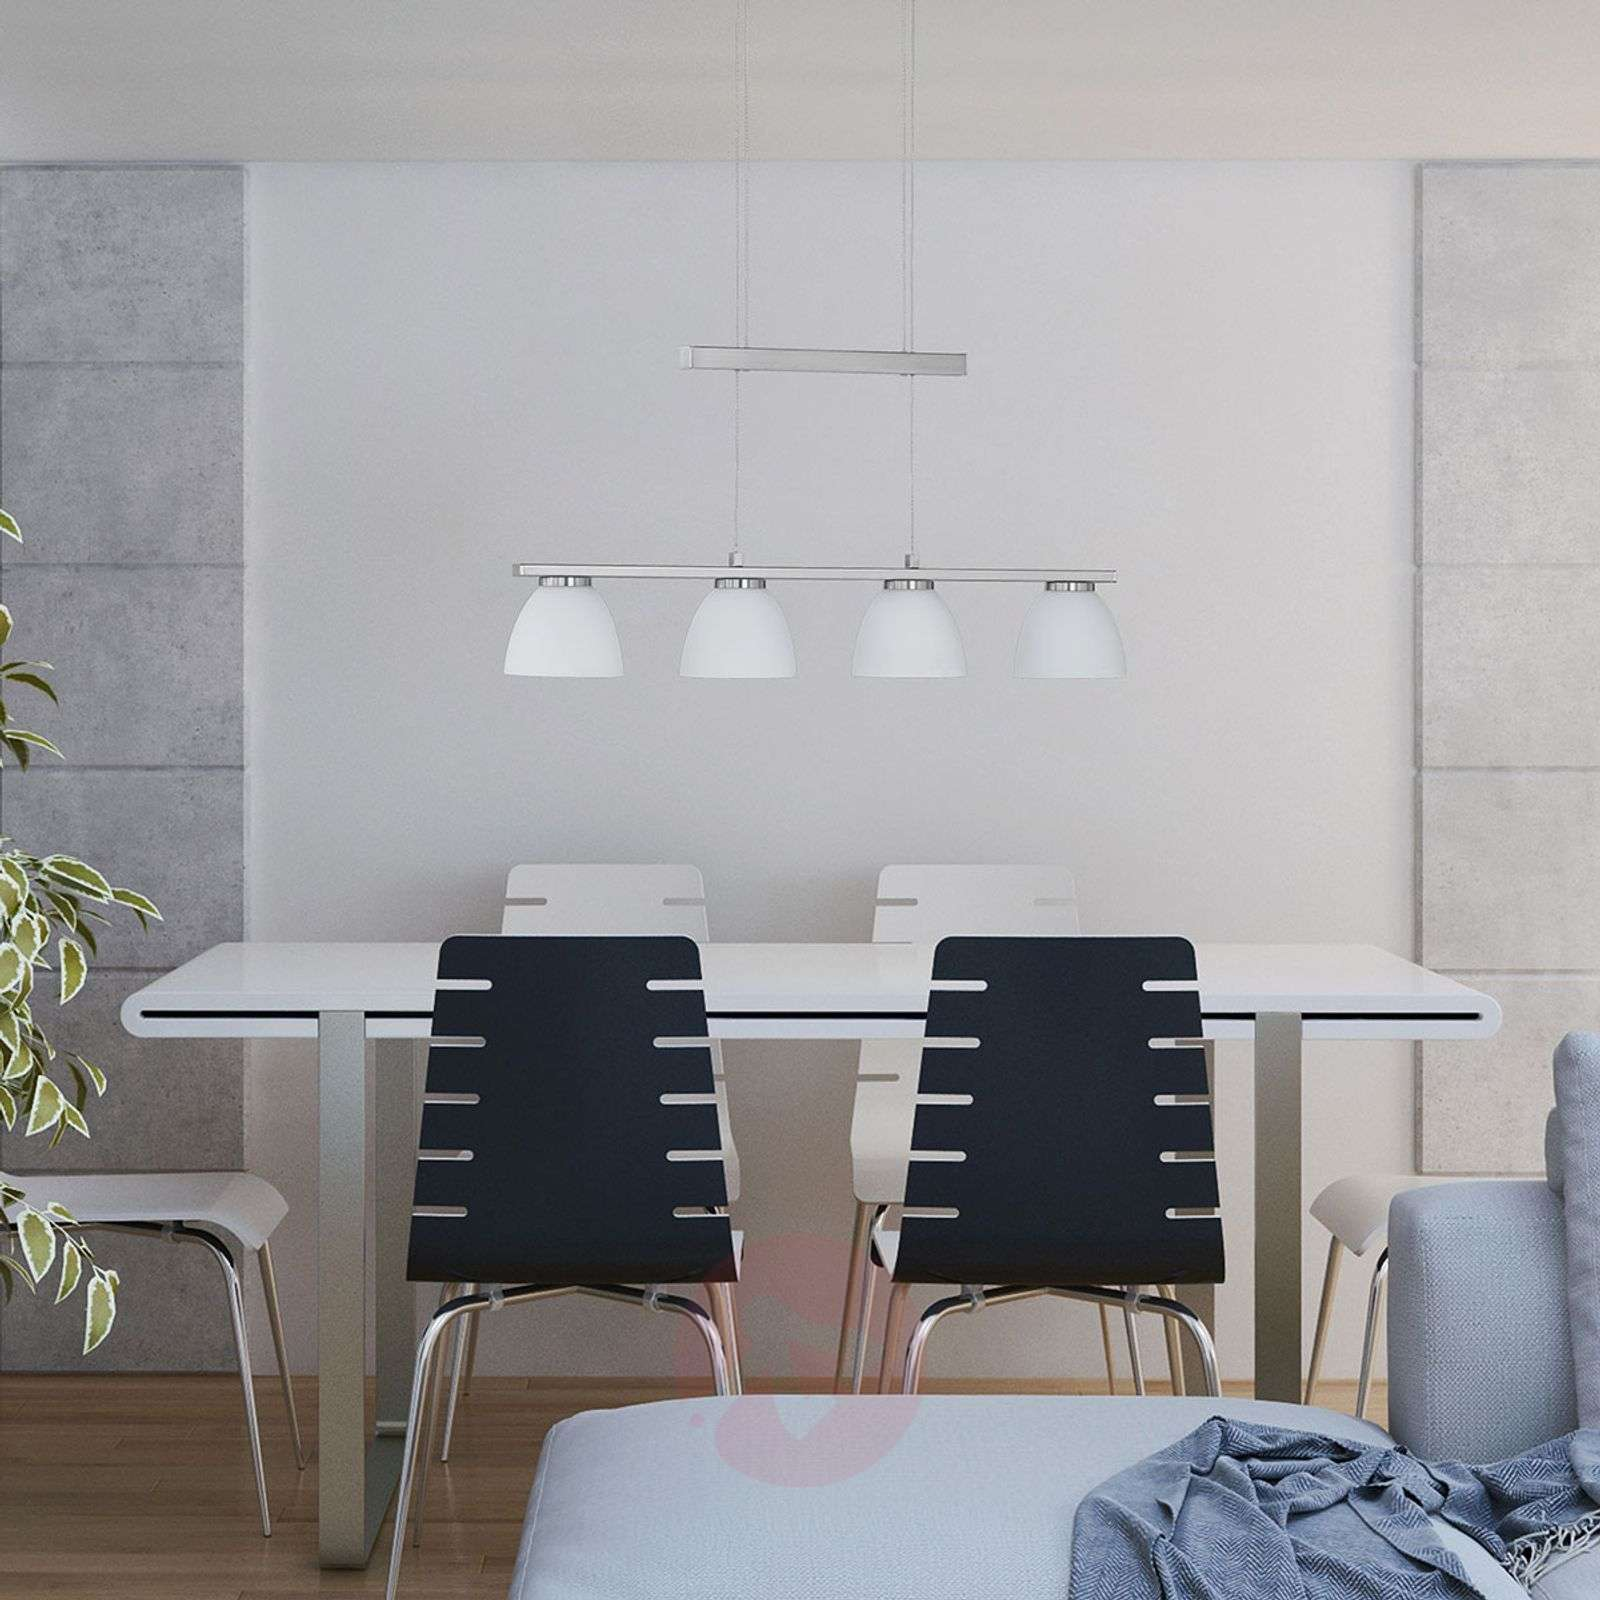 suspension led ava intensit variable 4 lampes. Black Bedroom Furniture Sets. Home Design Ideas